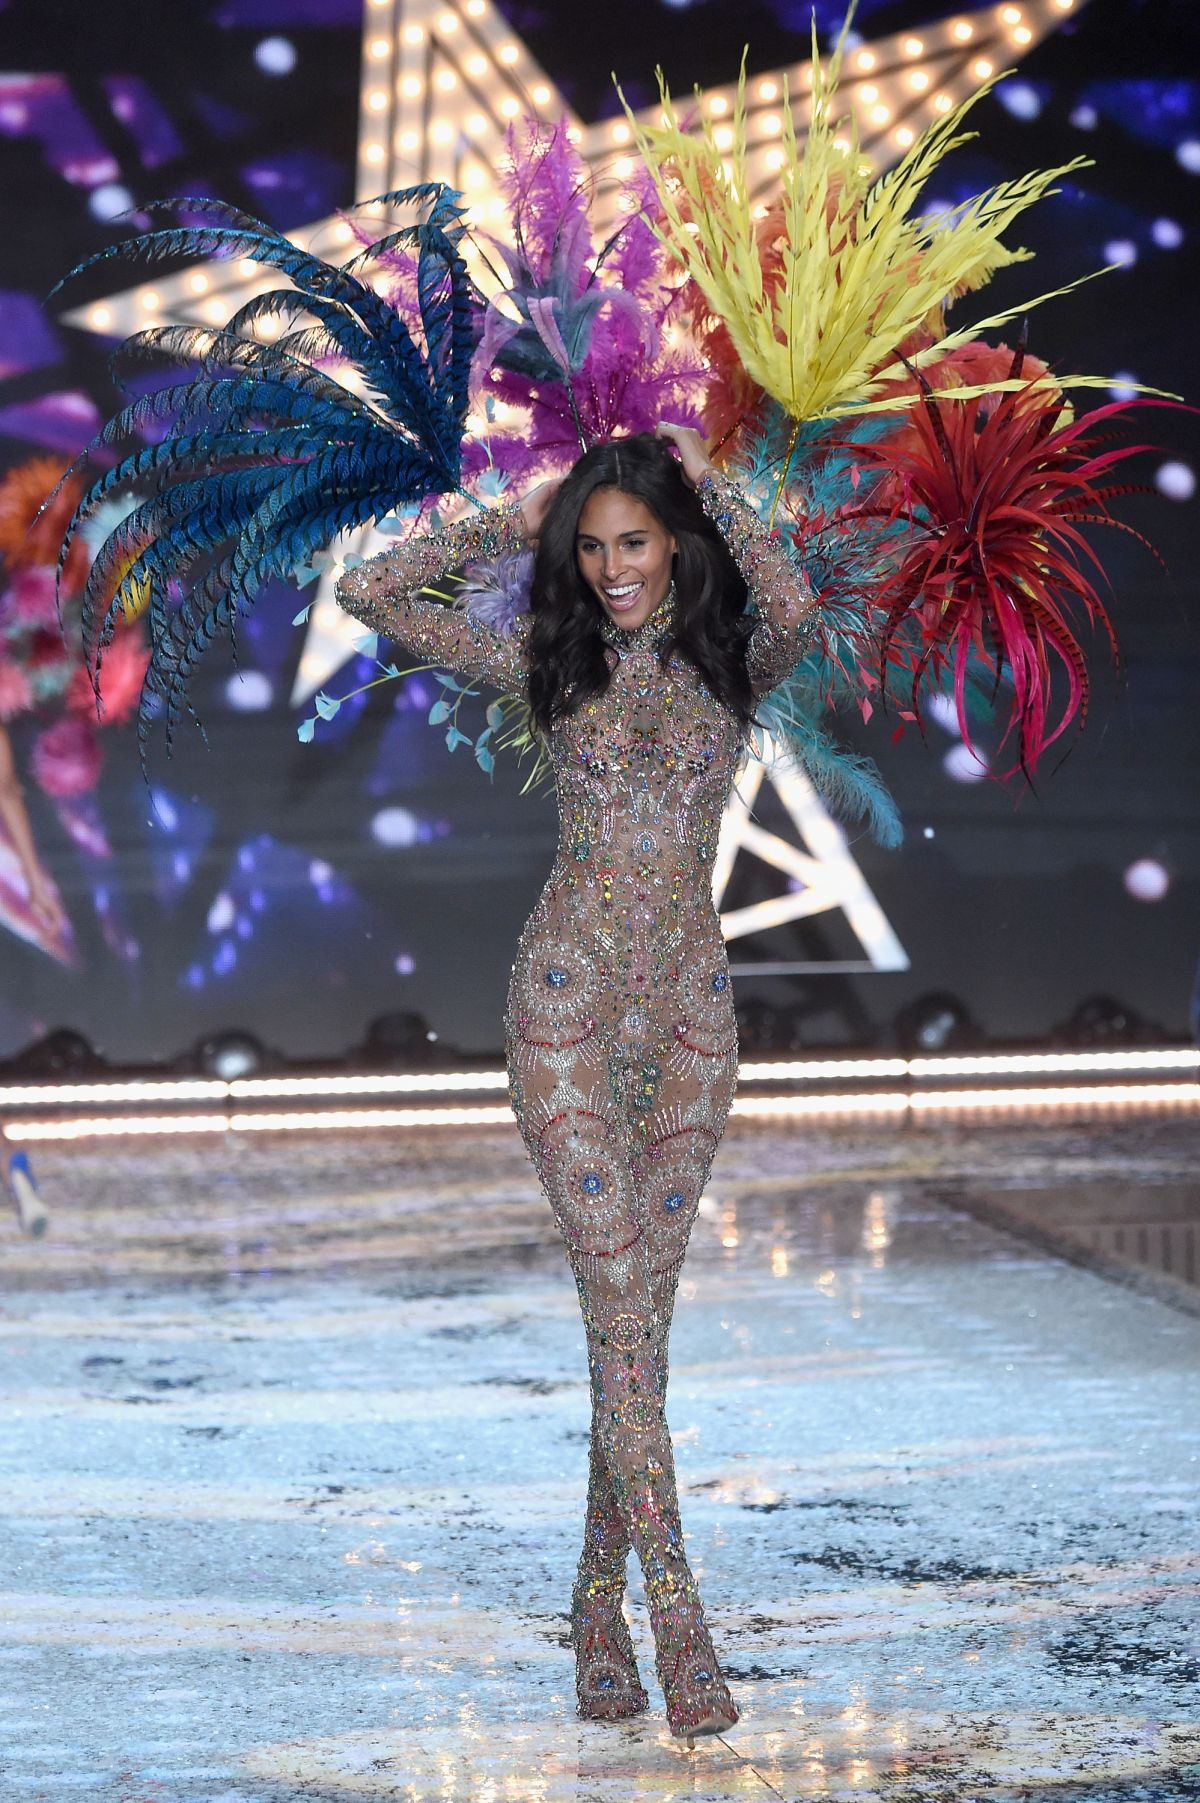 2015 S Most Popular Halloween Costumes By State Map: CINDY BRUNA At Victoria's Secret 2015 Fashion Show In New